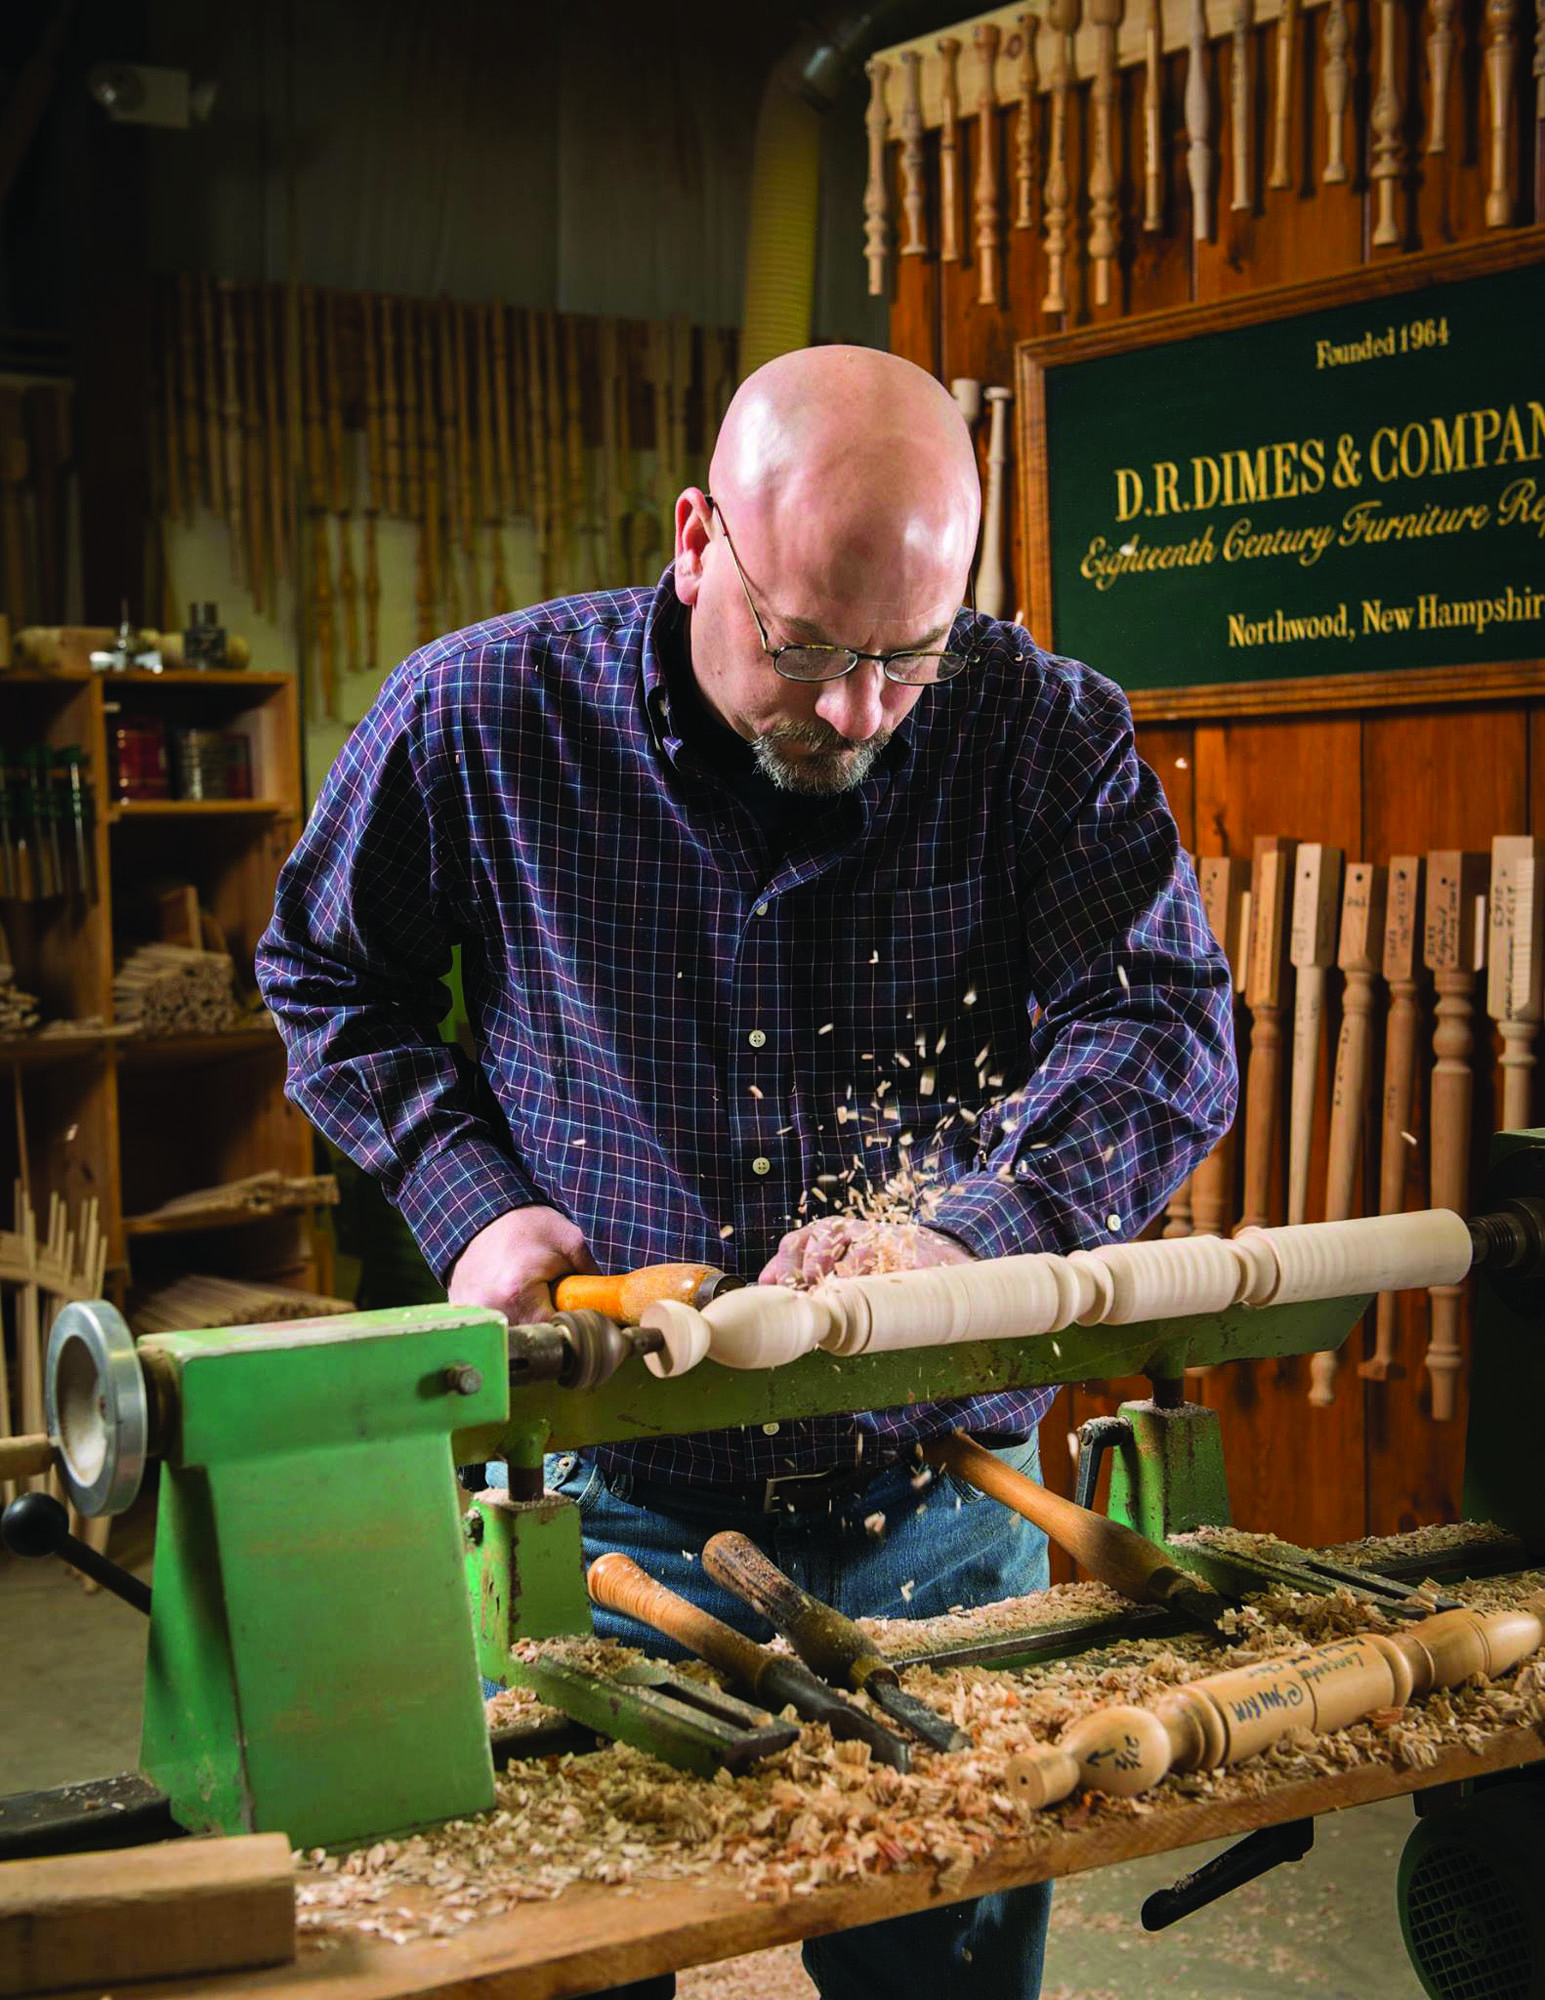 Like his father before him, Doug Dimes turns table legs by hand on a lathe.